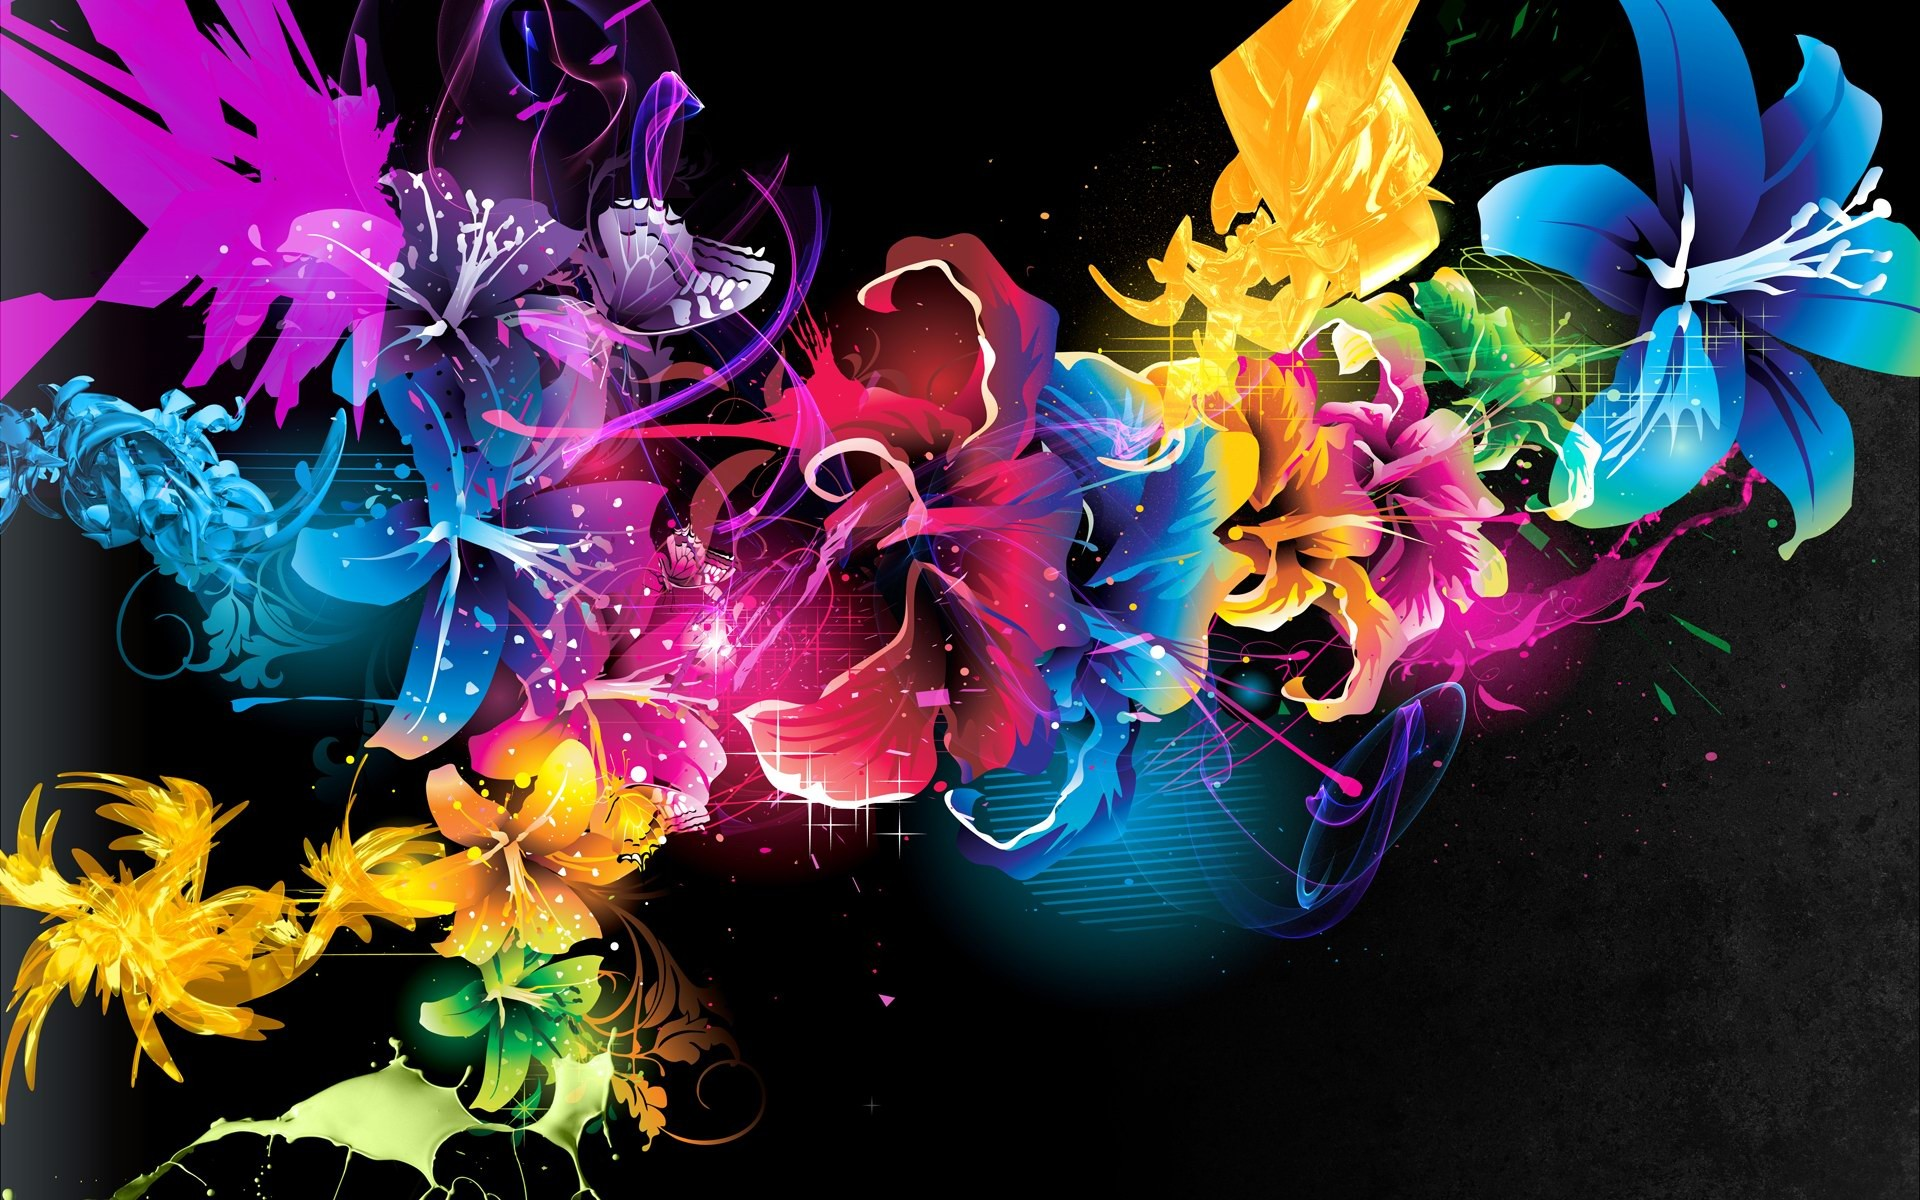 Colorful Abstract Flower Design Hd Wallpaper